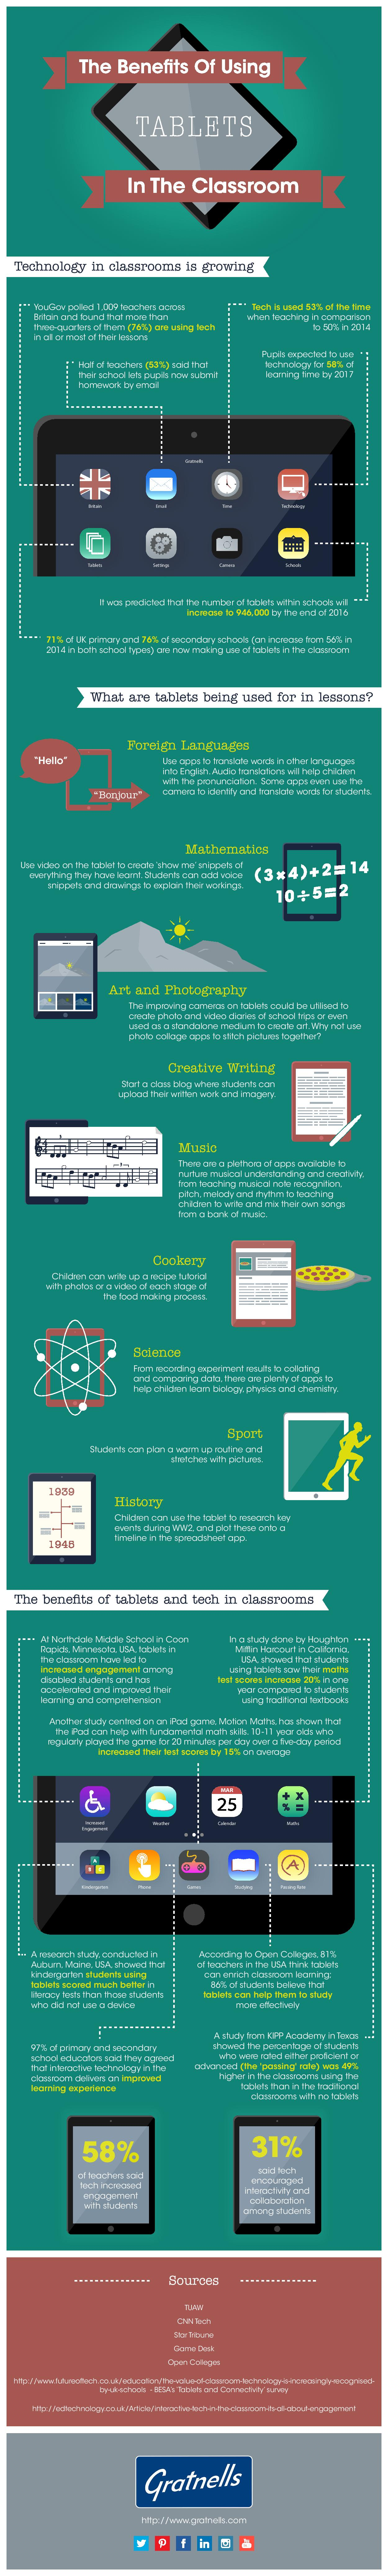 Gratnells-Ipads-In-Schools-Infographic-PROOF3-page-001